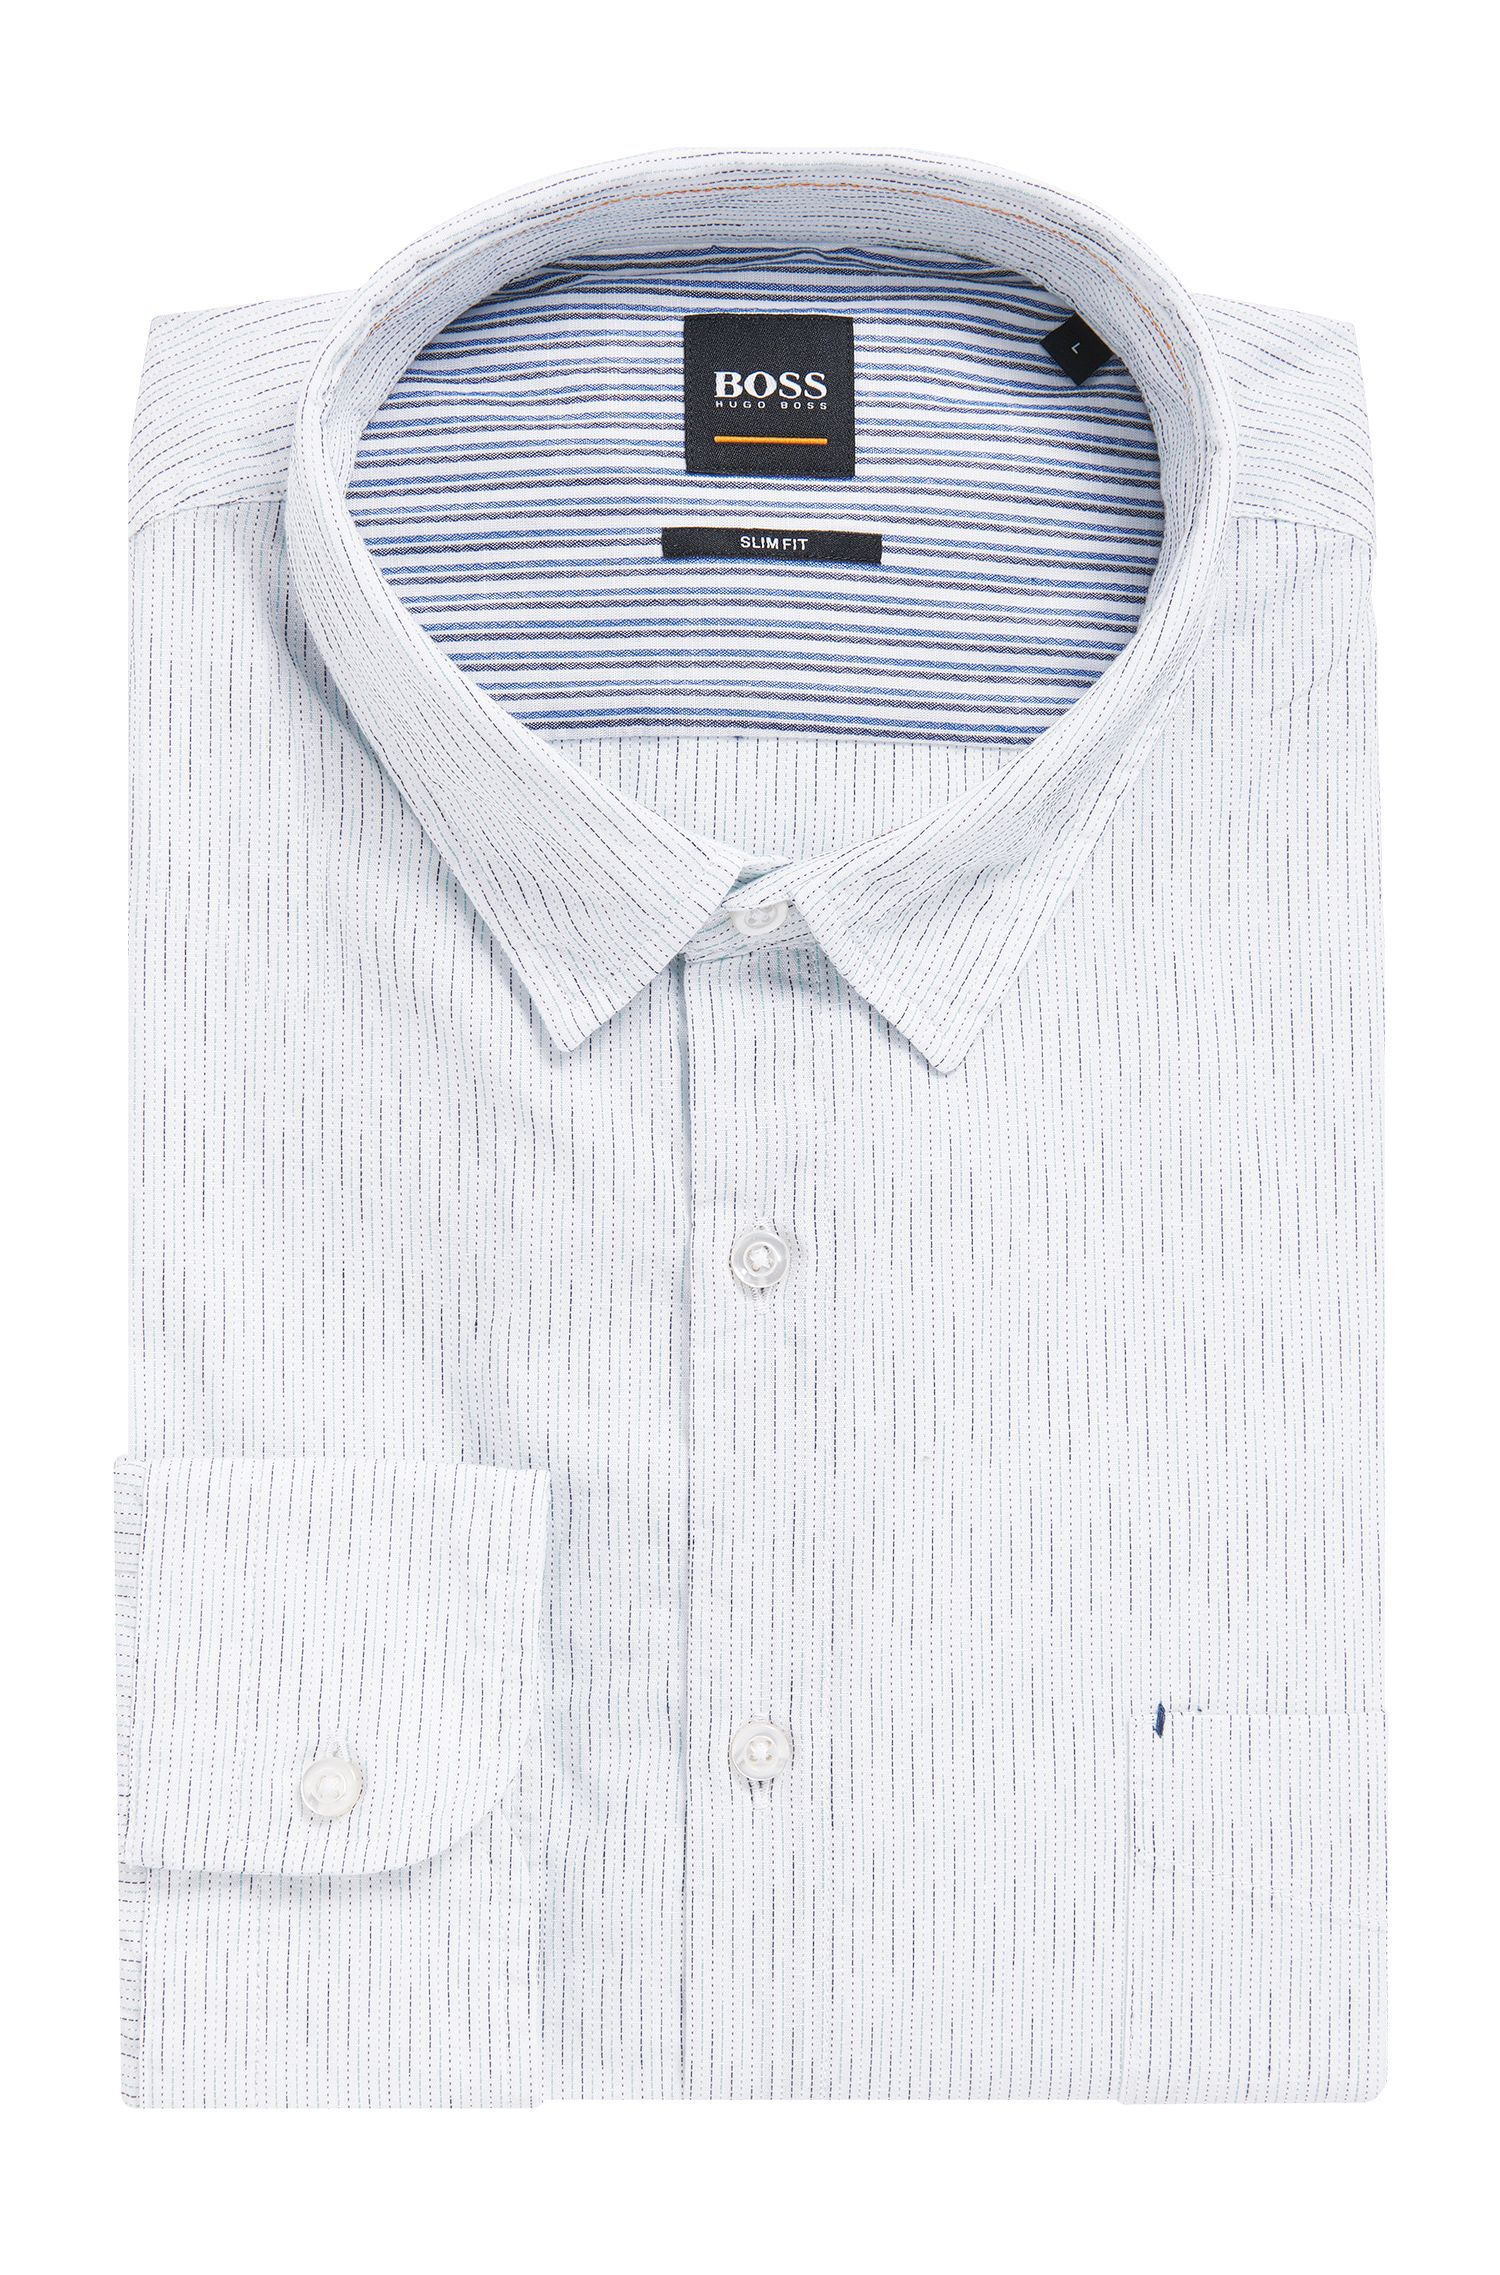 Cotton Broken Stripe Sport Shirt, Slim Fit | Cattitude, White